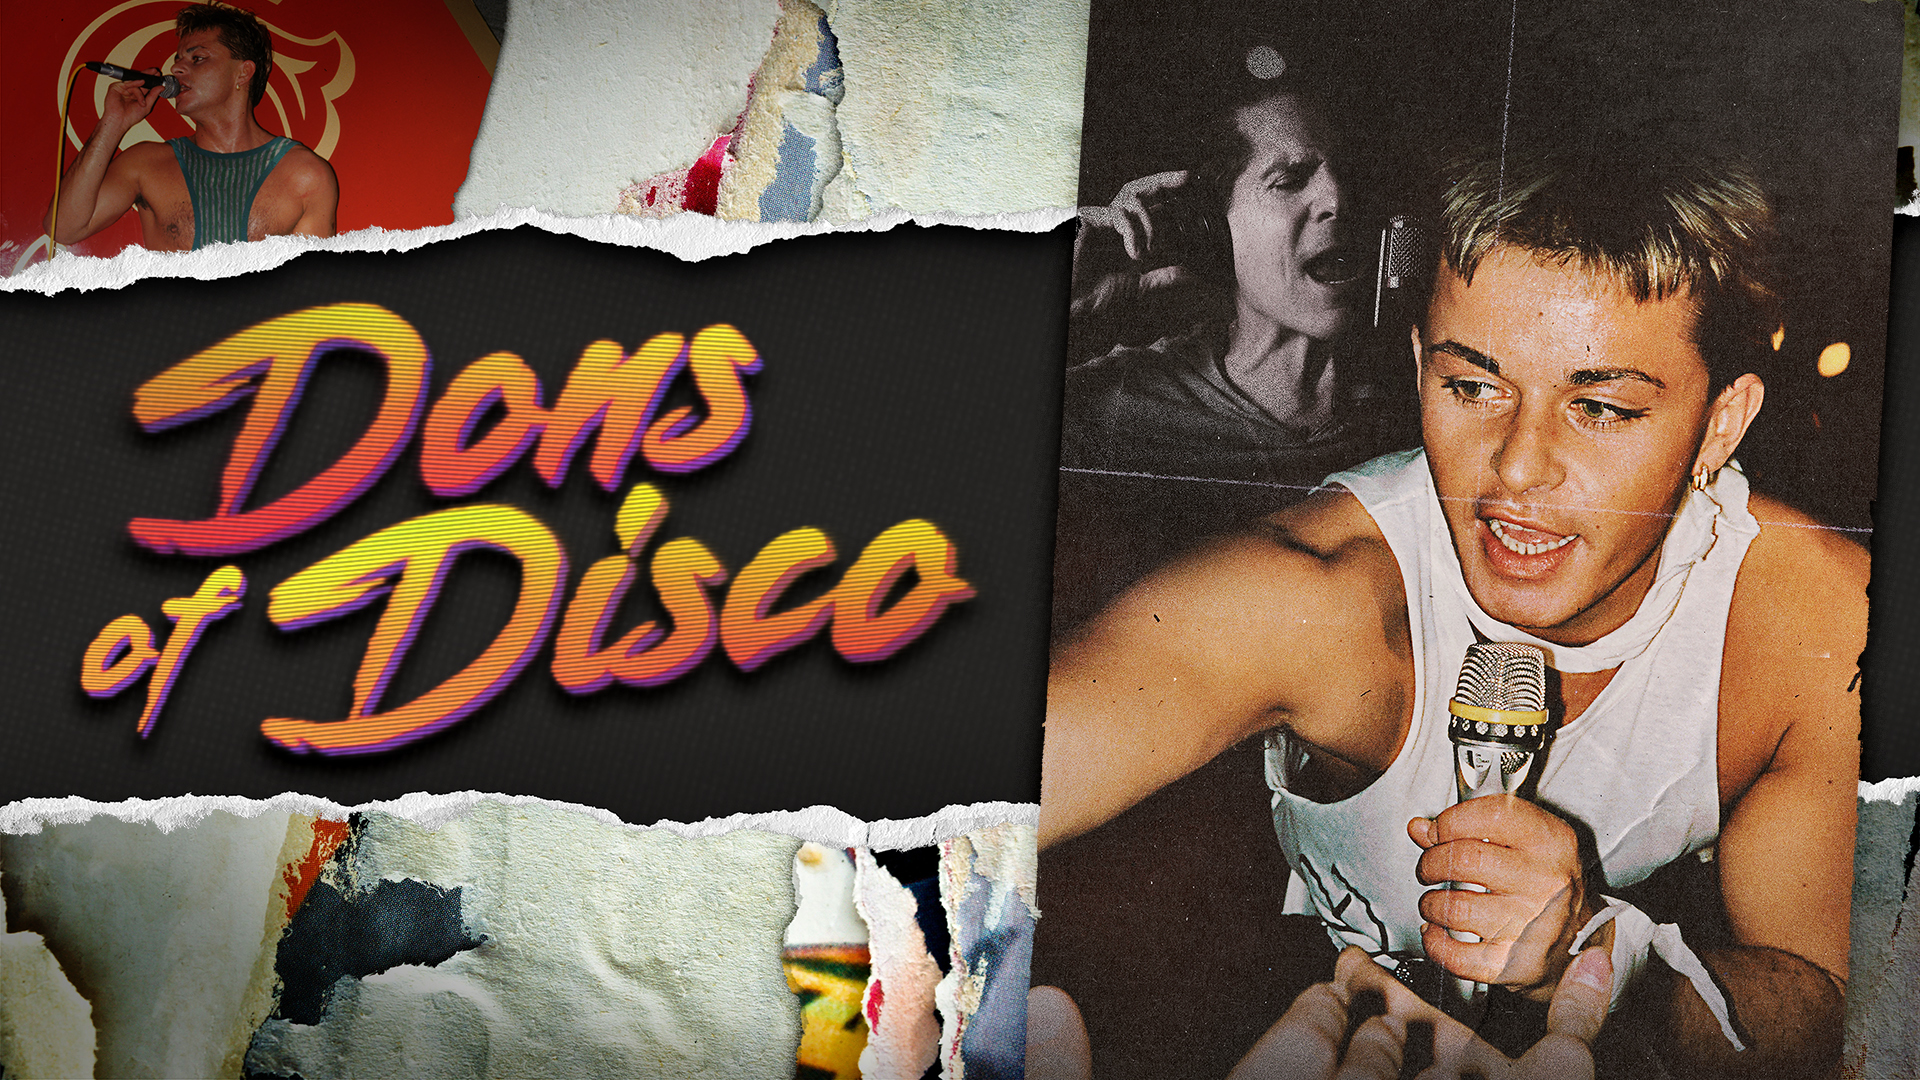 Dons of Disco